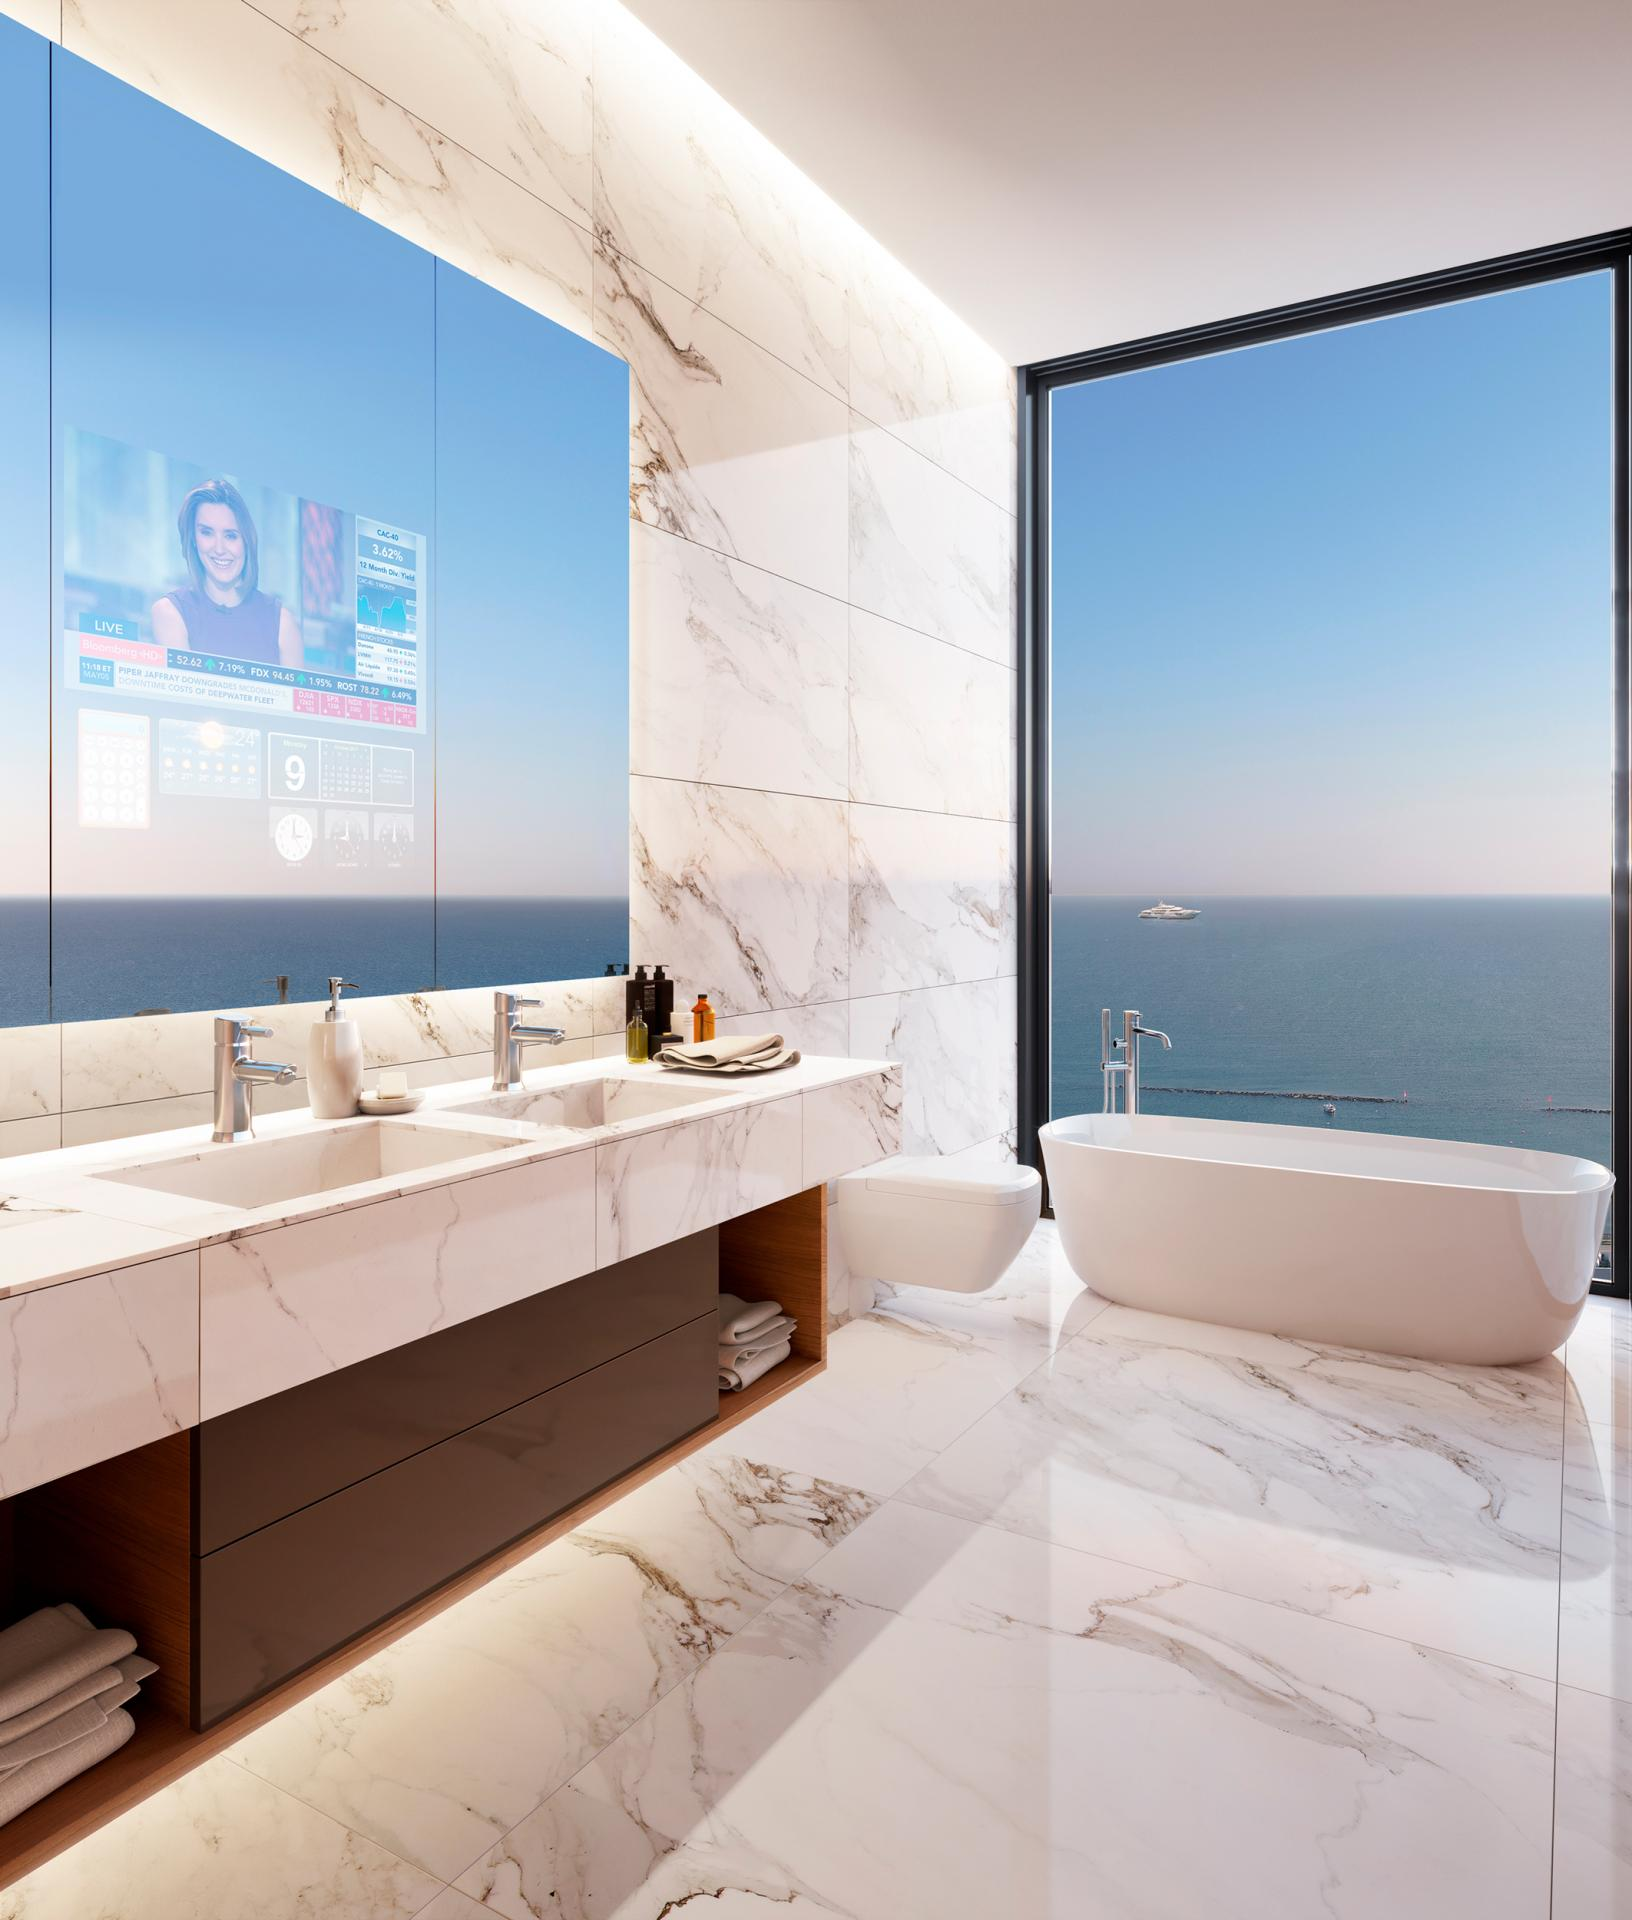 Top 10 beautiful bathrooms from around the world - Blog